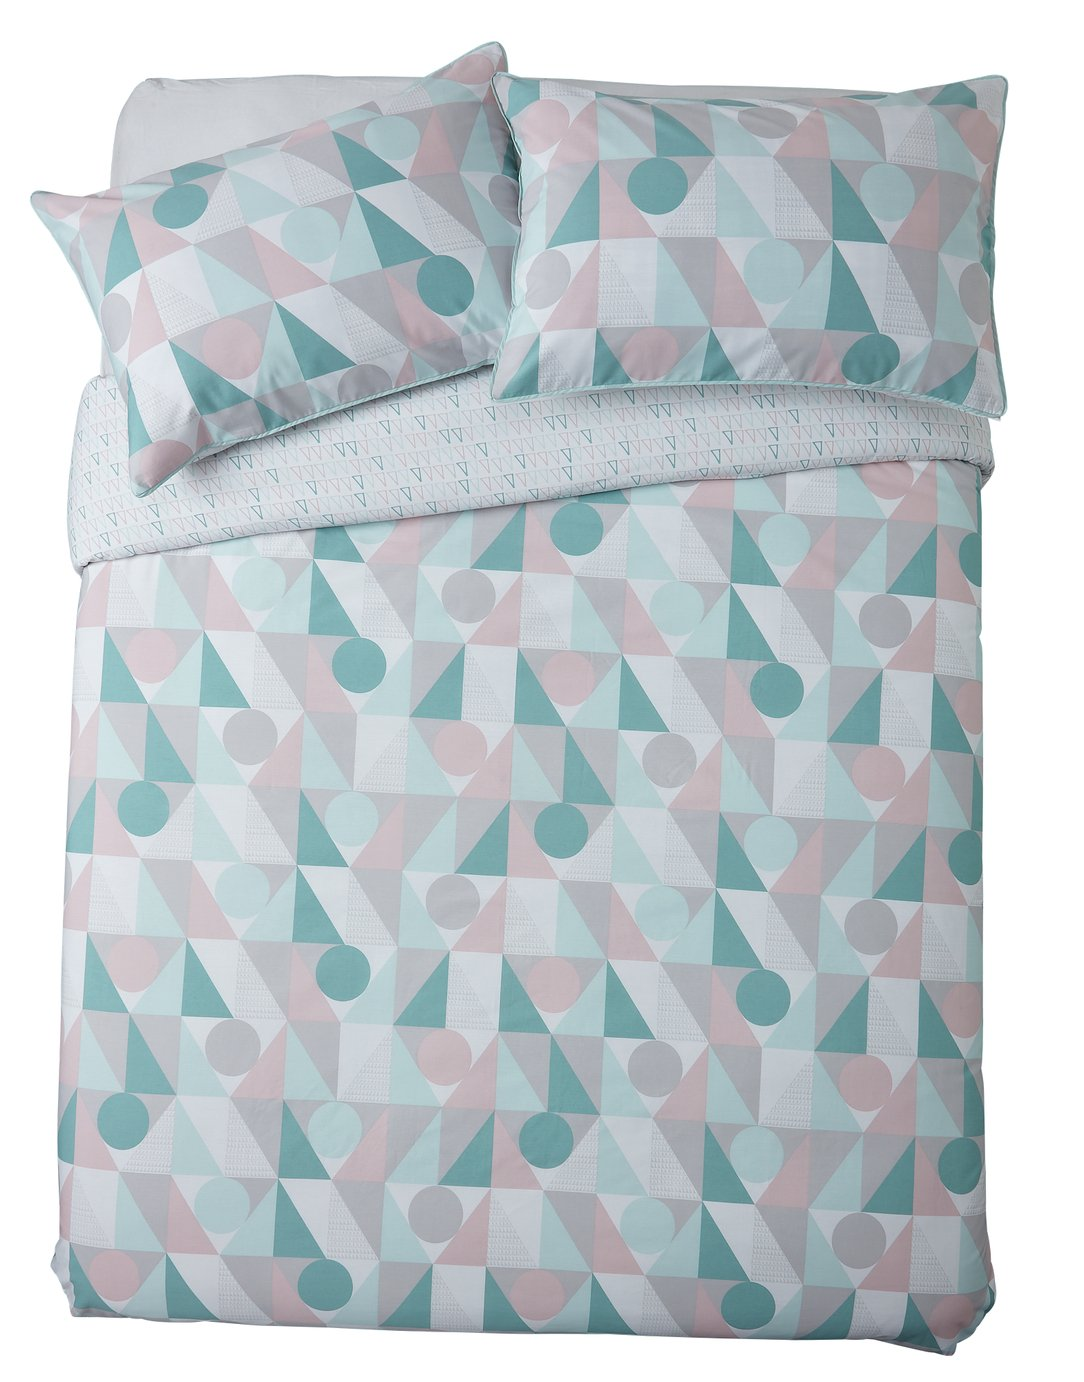 Sainsbury's Home Triangle Print Bedding Set - Kingsize